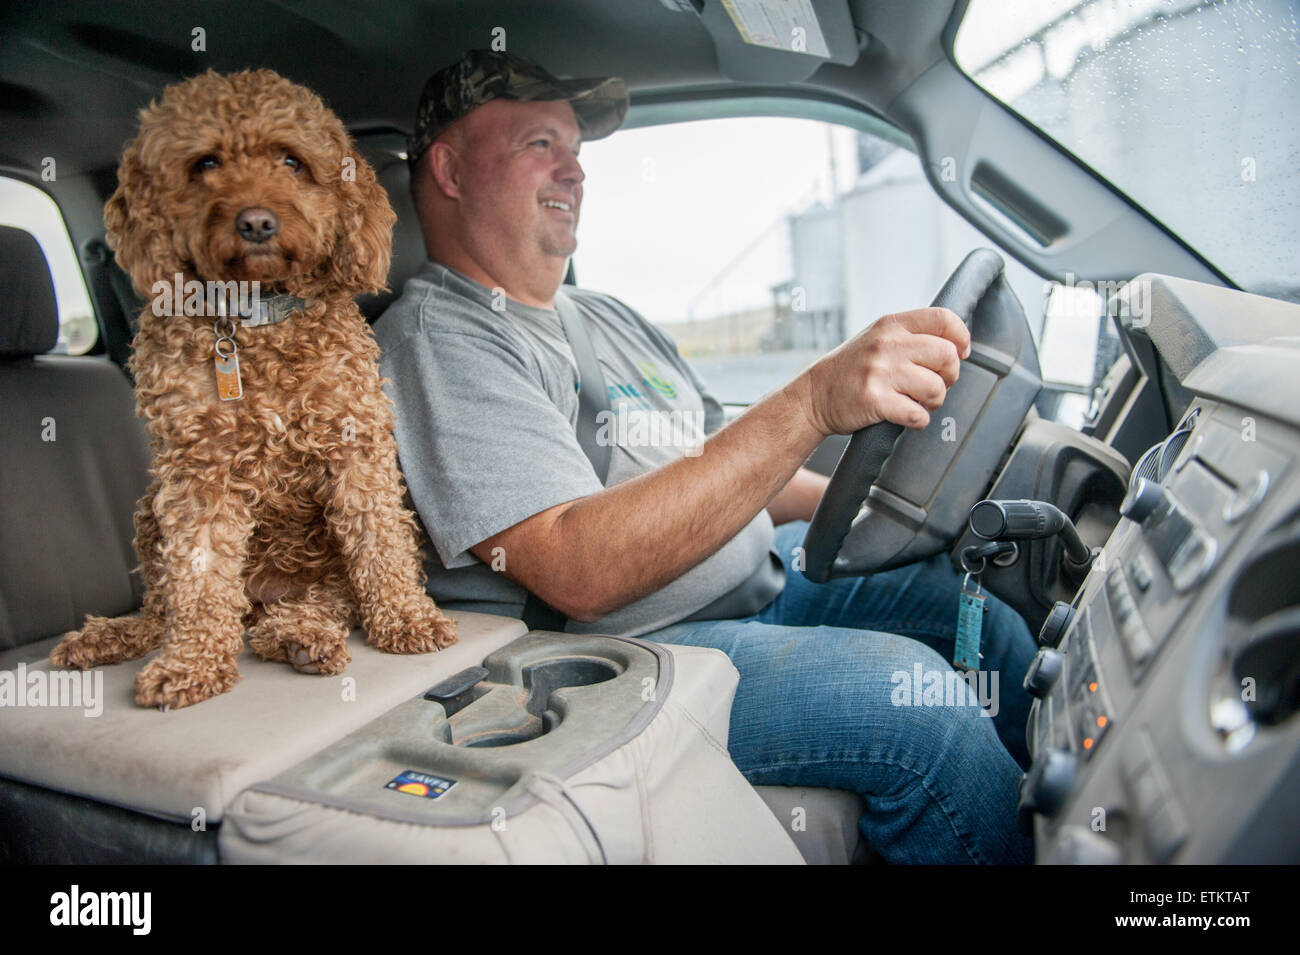 Farmer in the cab of his truck with his pet dog sitting next to him in Dalmatia, Pennsylvania, USA - Stock Image